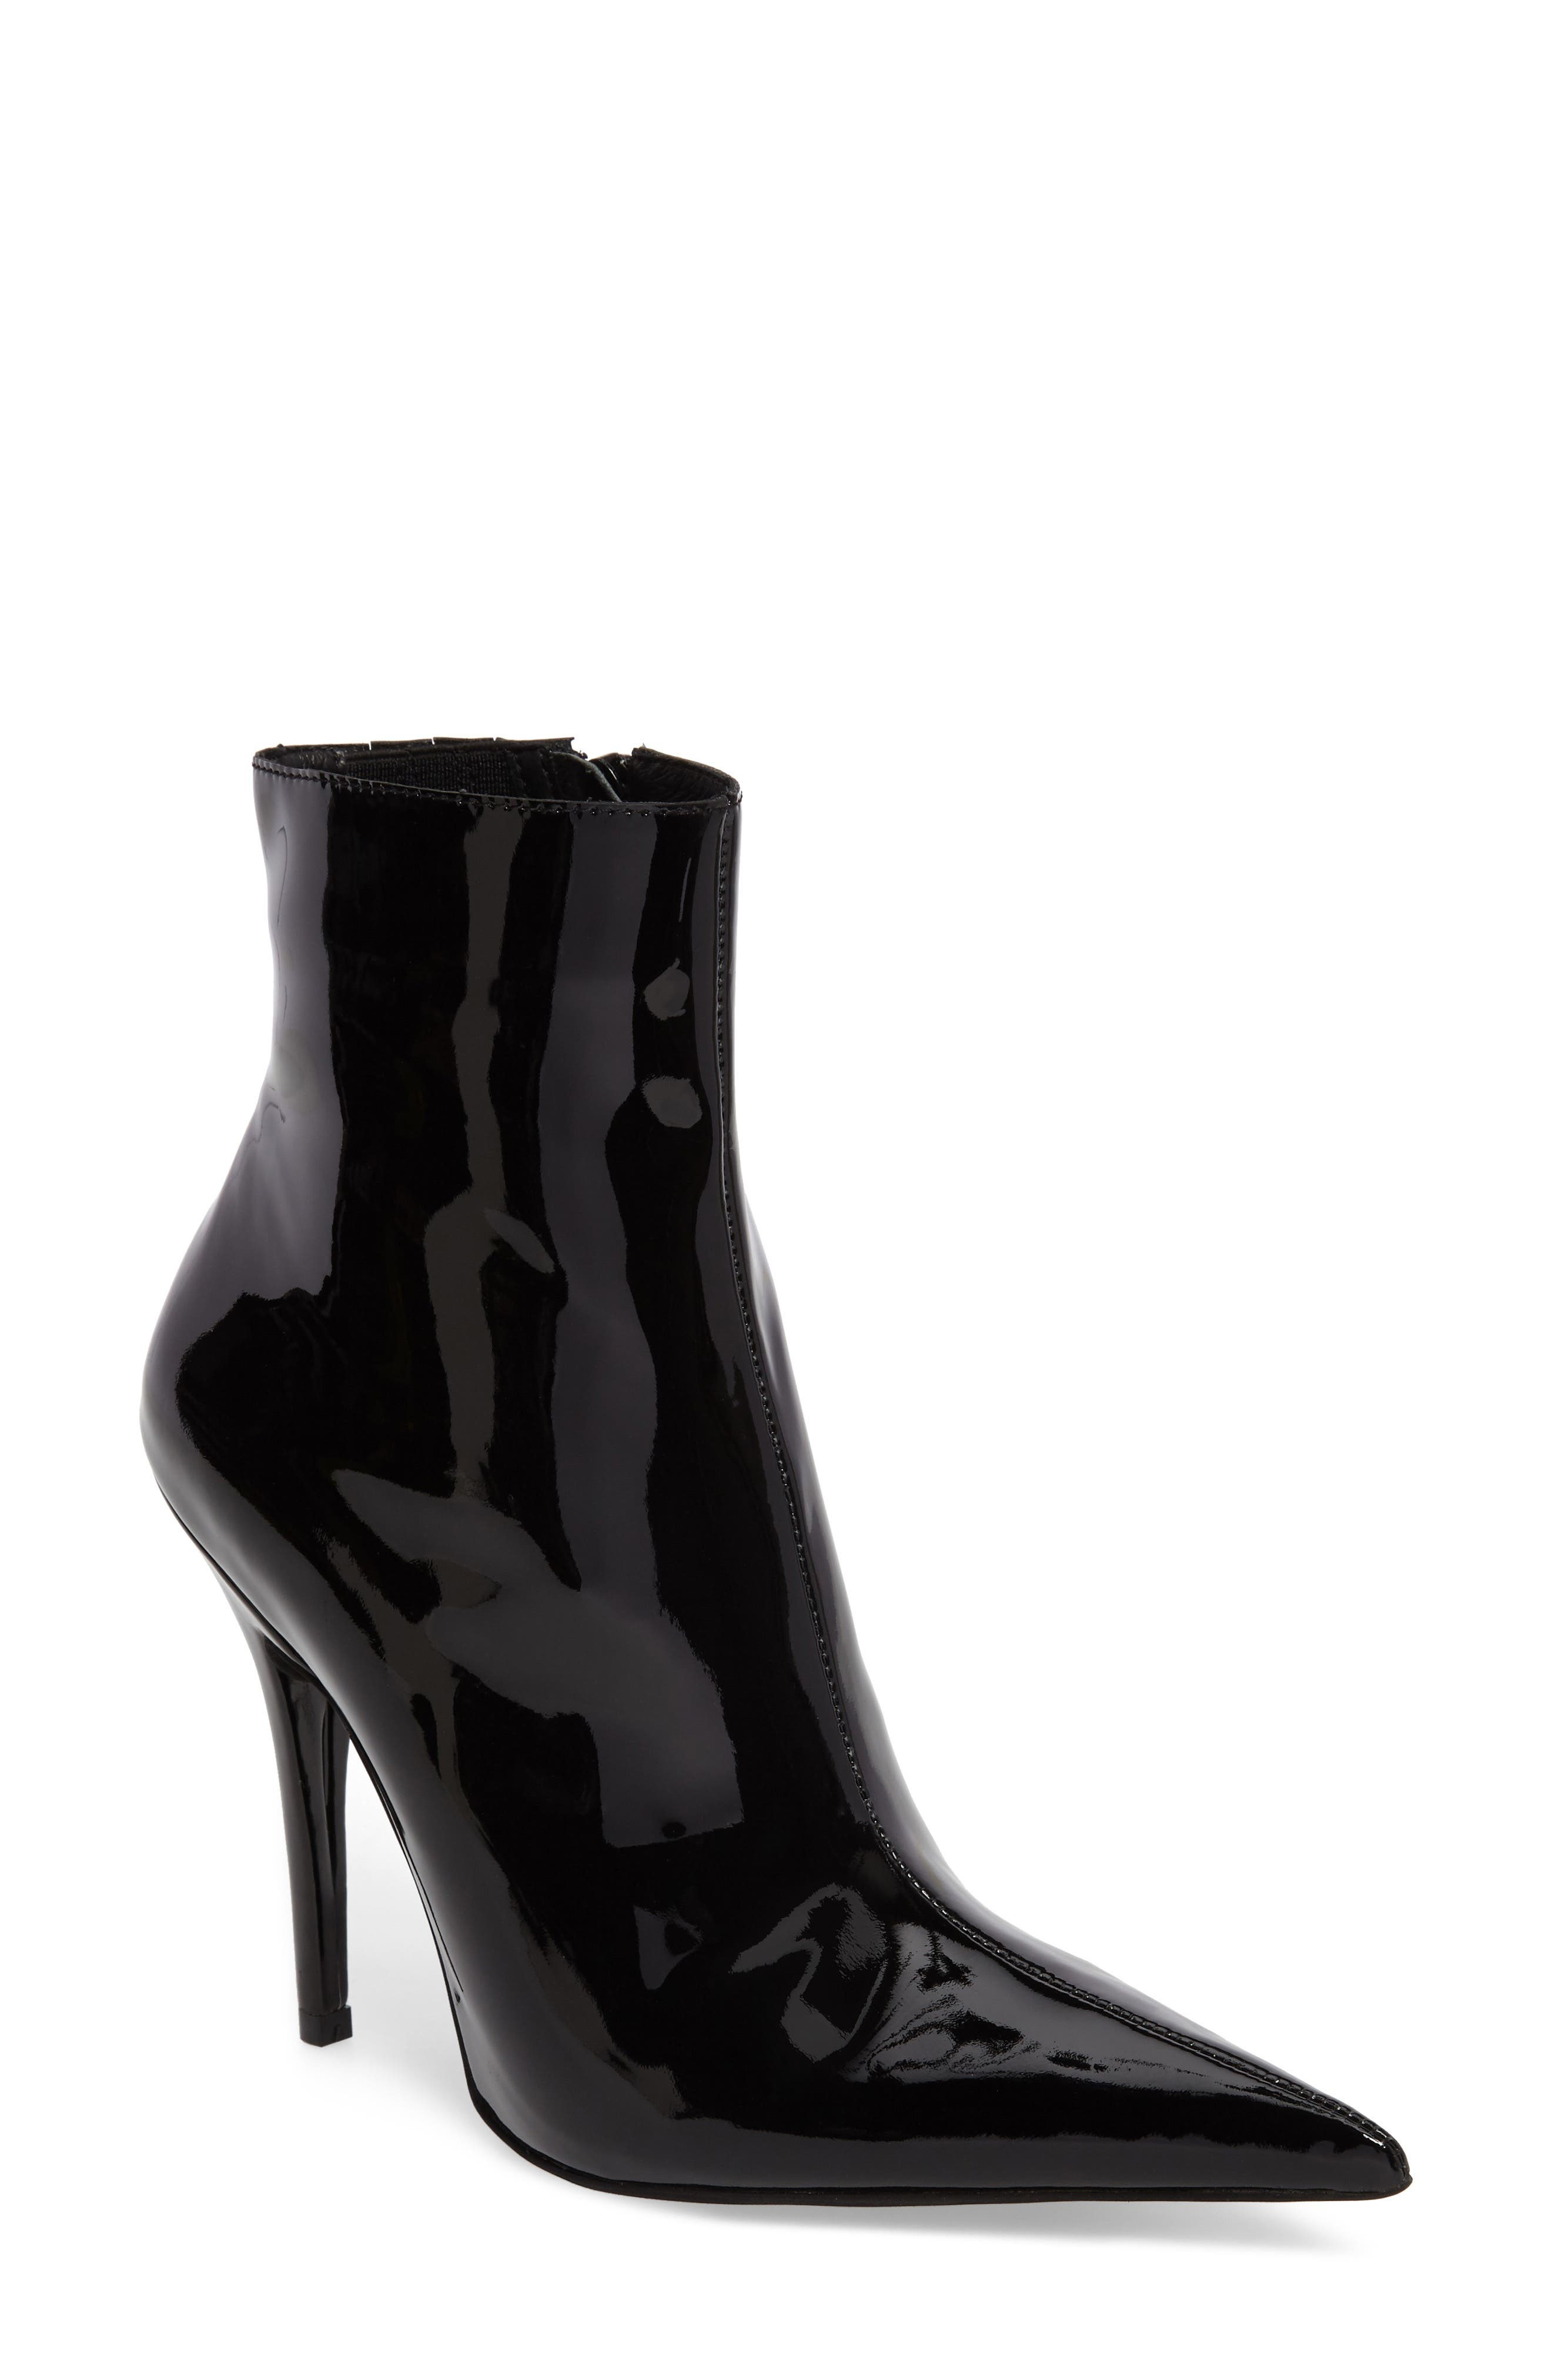 Vedette Pointy Toe Booties,                             Main thumbnail 1, color,                             Black Patent